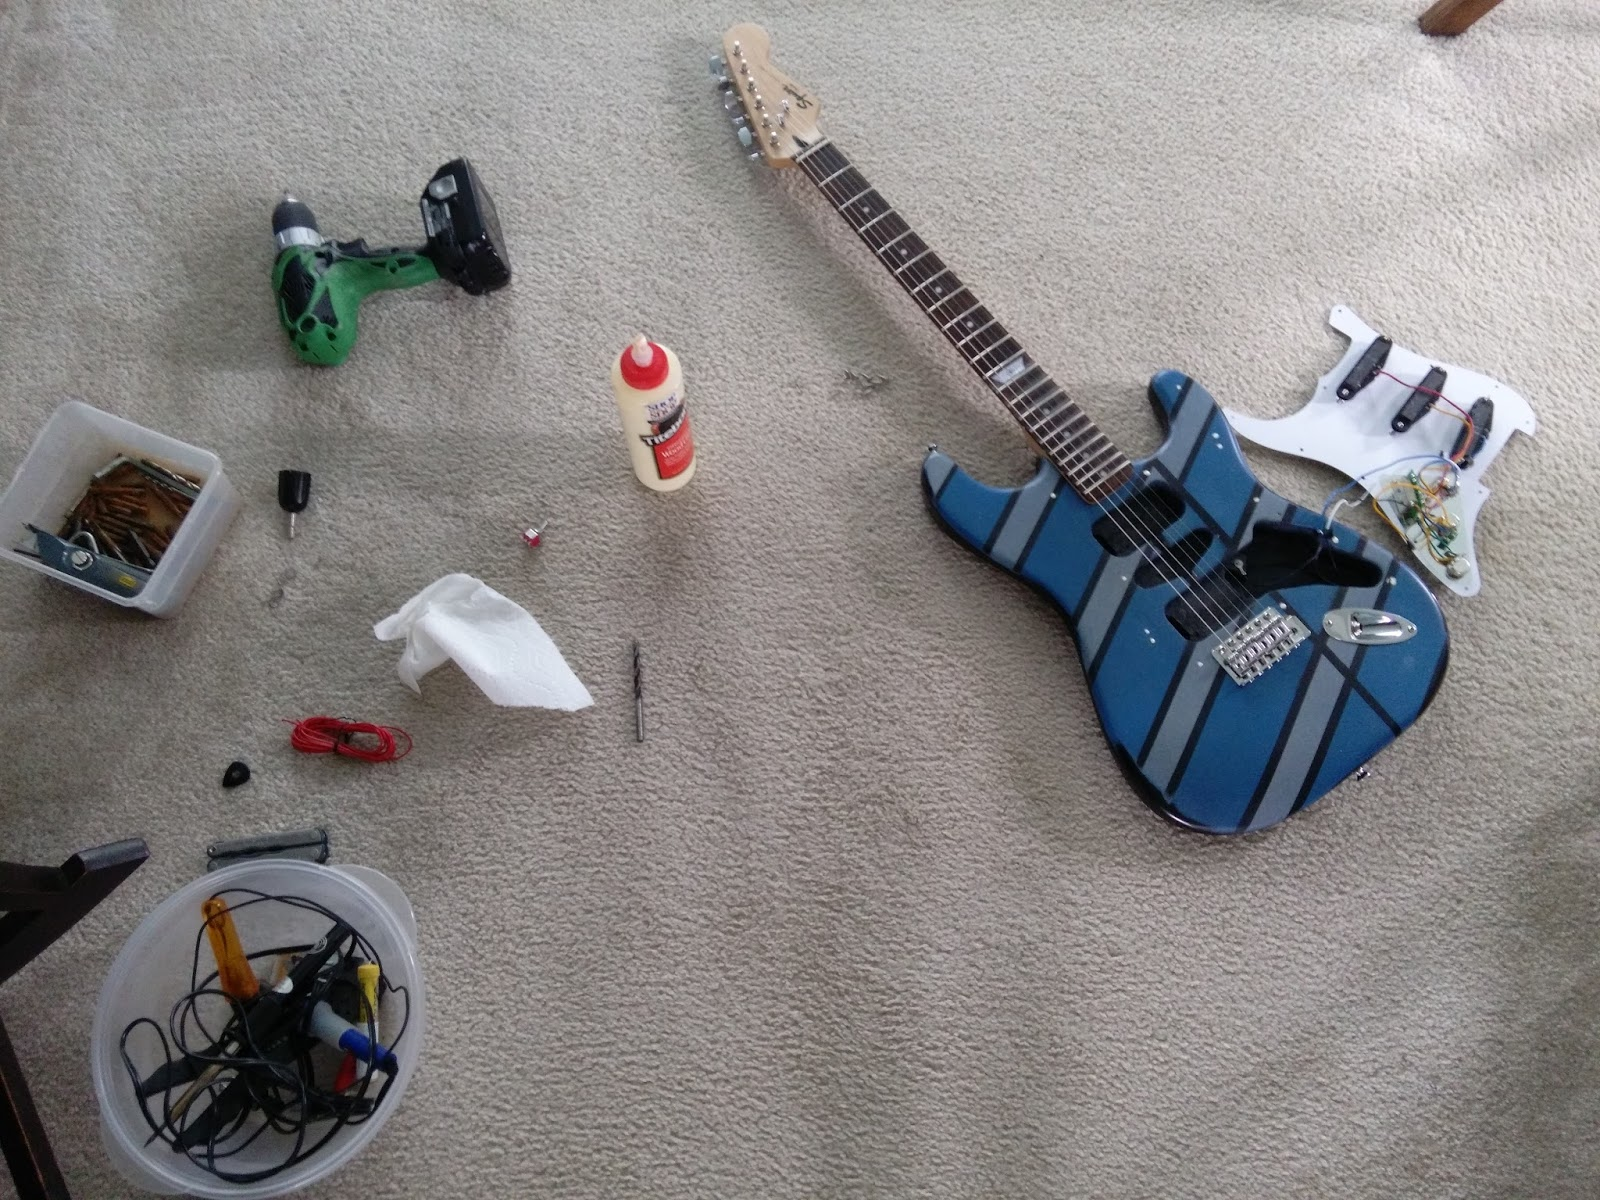 Mattwins Adventures Of A Squier Strat Episode Ix Evh Frankenstein Humbucker Wiring Diagram Finally Beginning To Exhaust Possibilities For Moderate External Upgrades Today I Took The Adventure Inside Guitar Introducing Two Simple